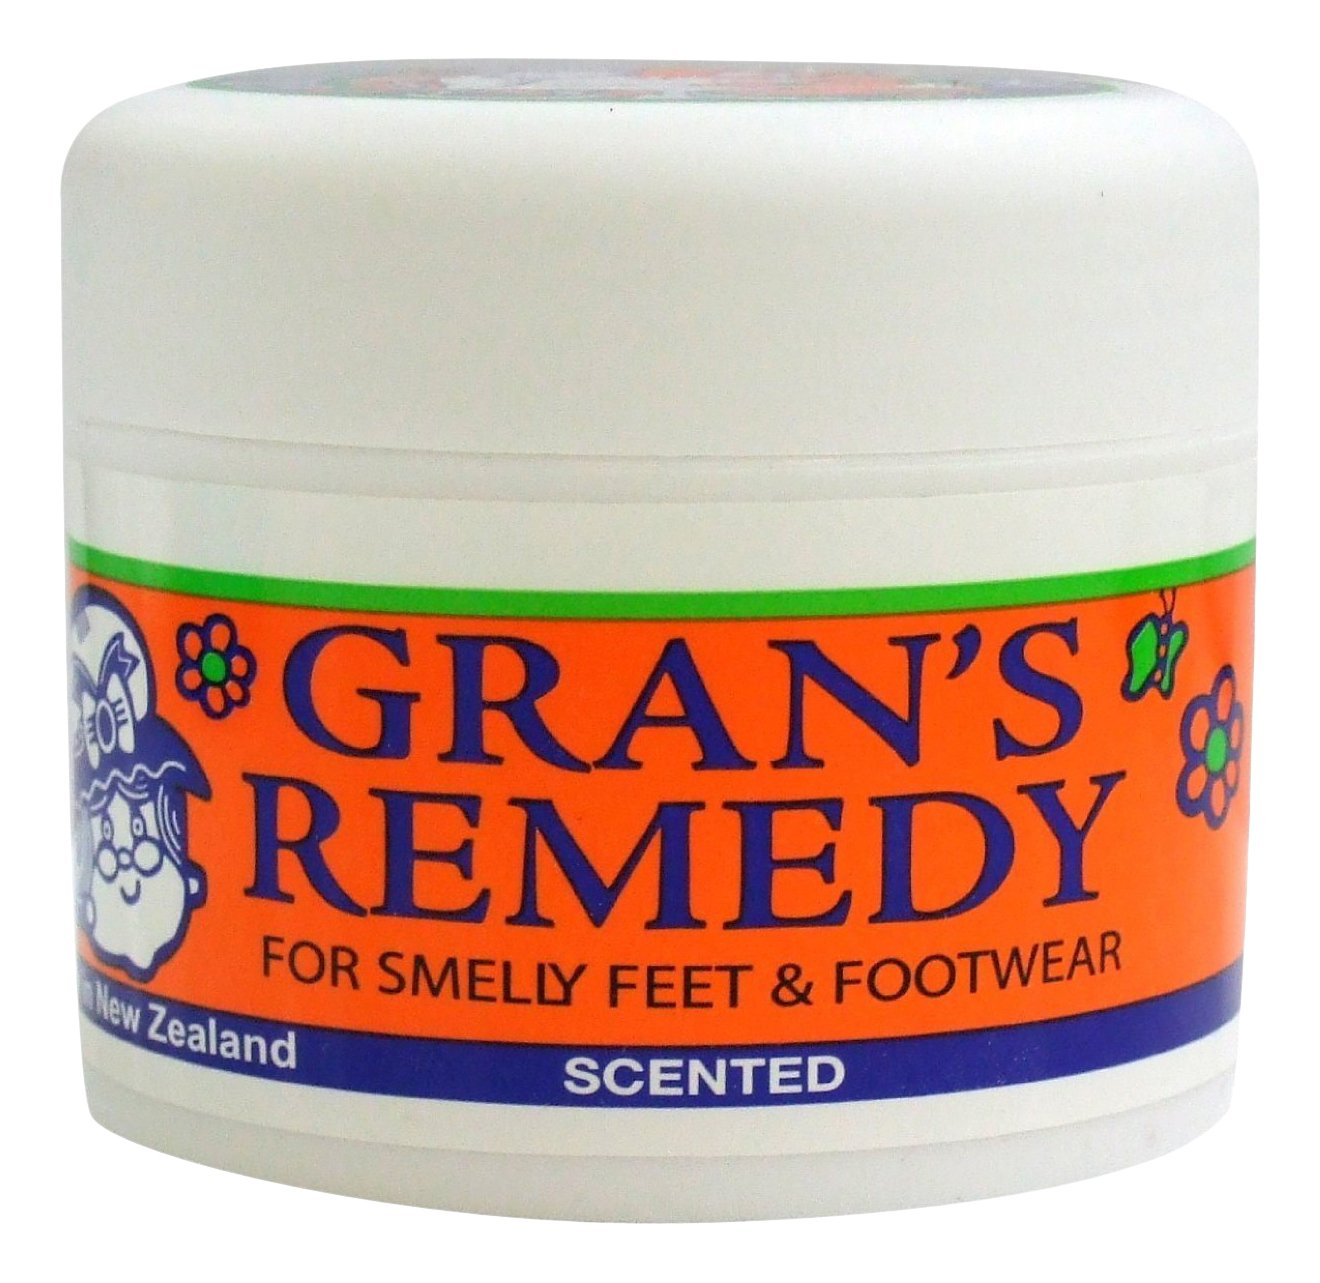 Gran's Remedy Foot Powder